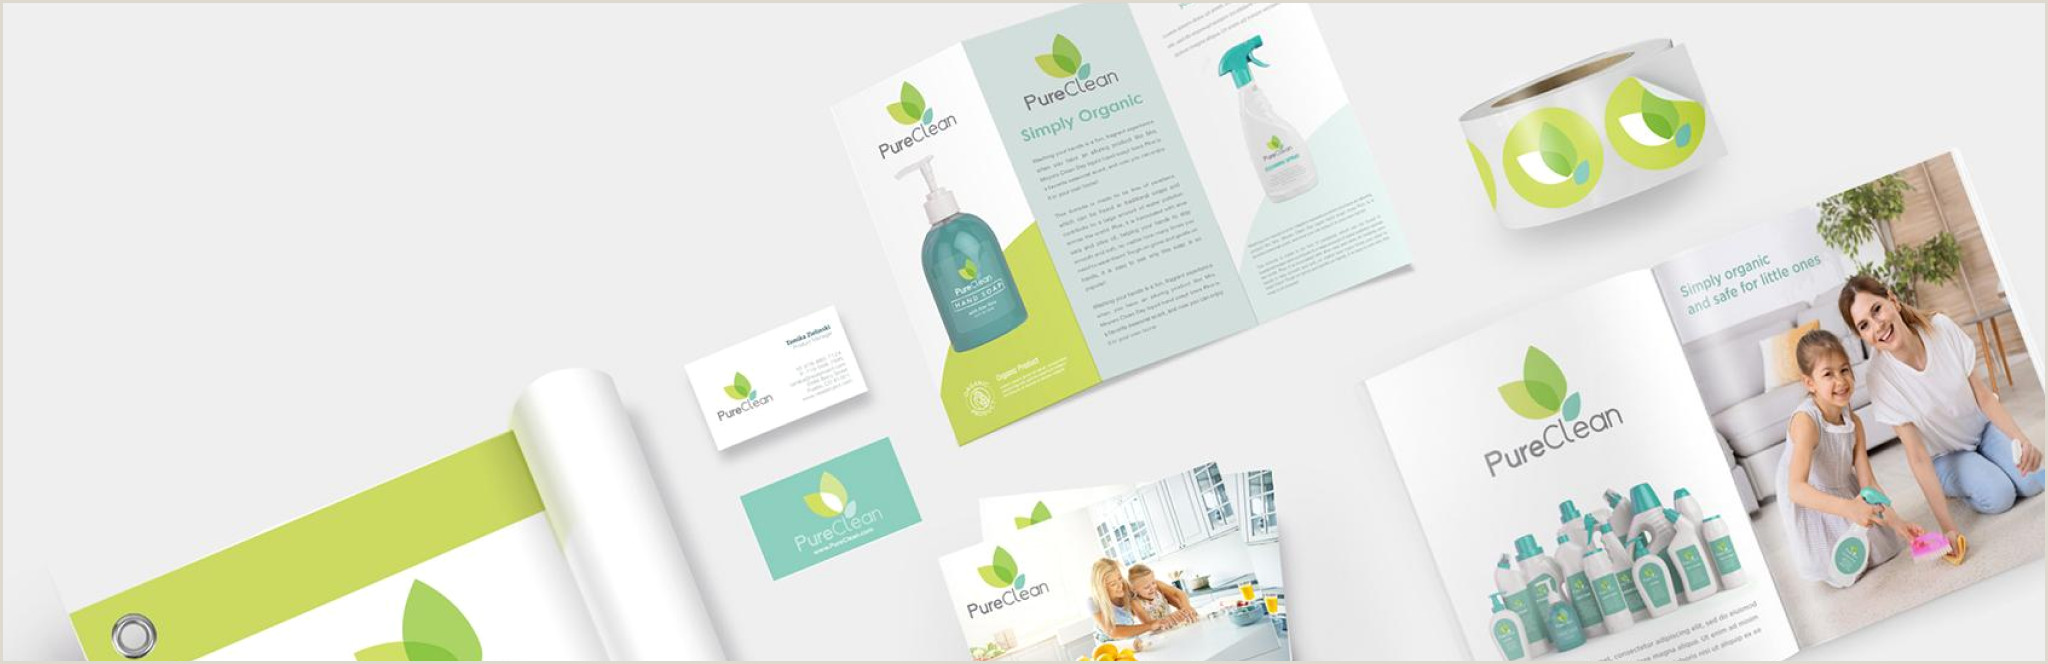 How To Make Professional Business Cards Printplace High Quality Line Printing Services